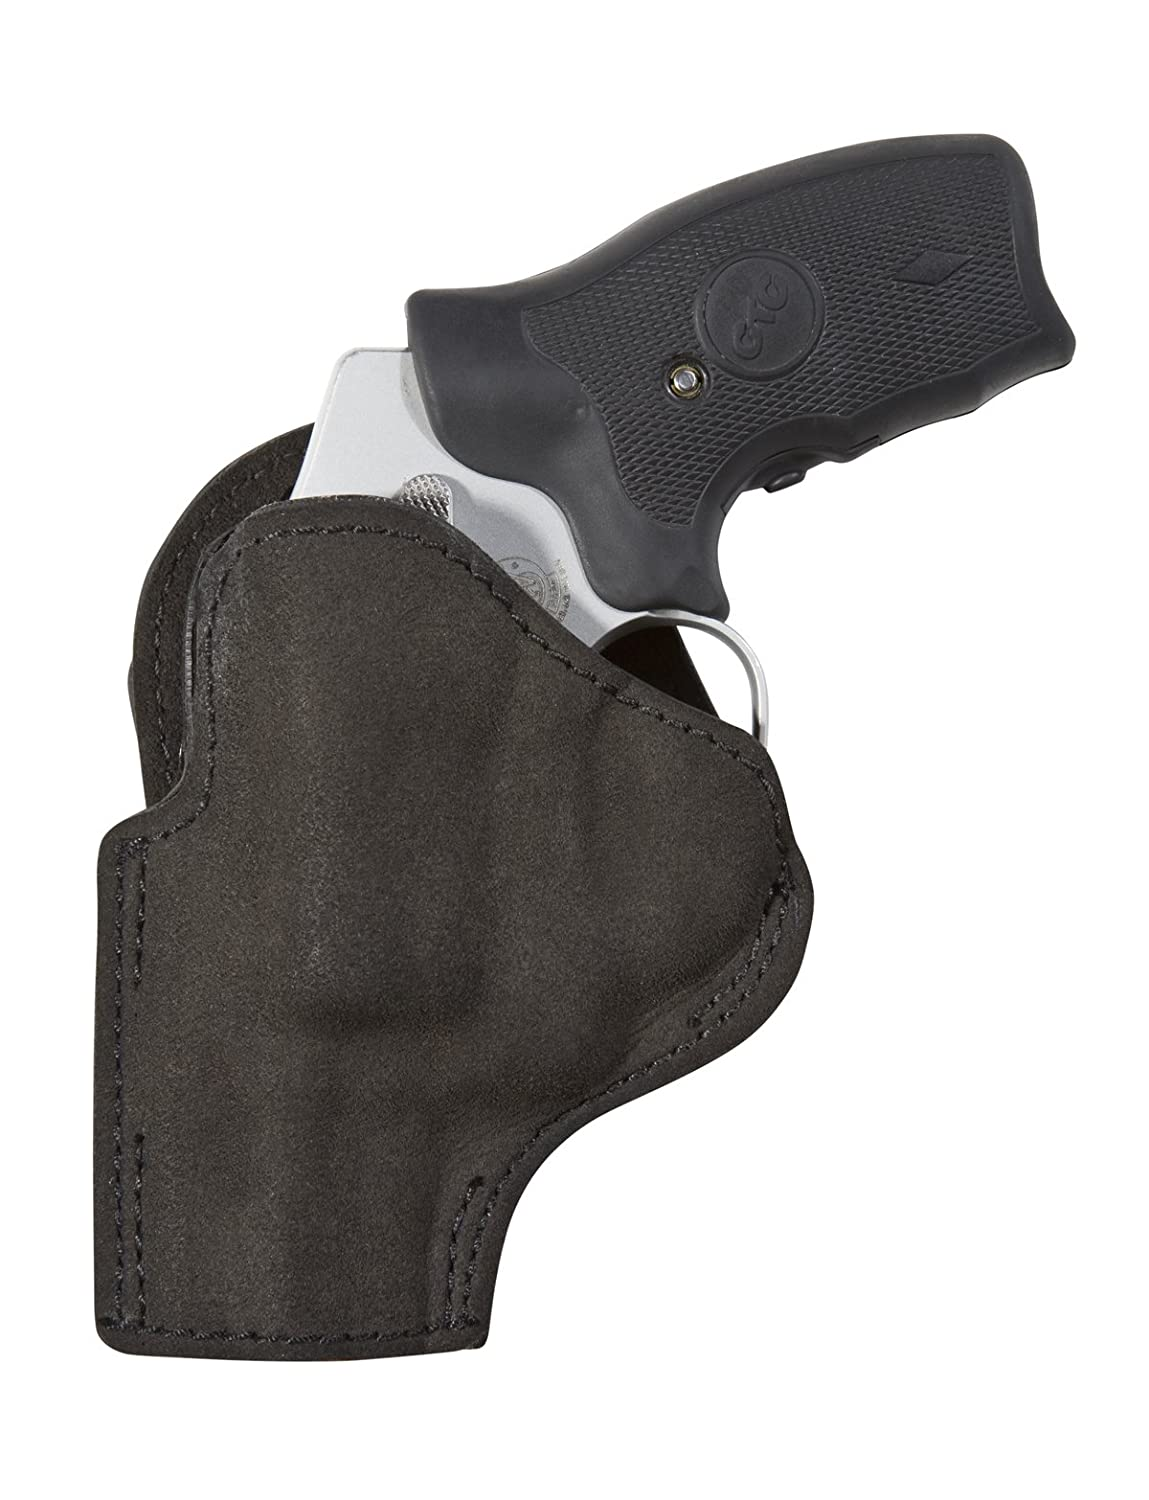 Amazon.com : Safariland 18 Inside-the-Waistband Holster, S&W J-Frame ...